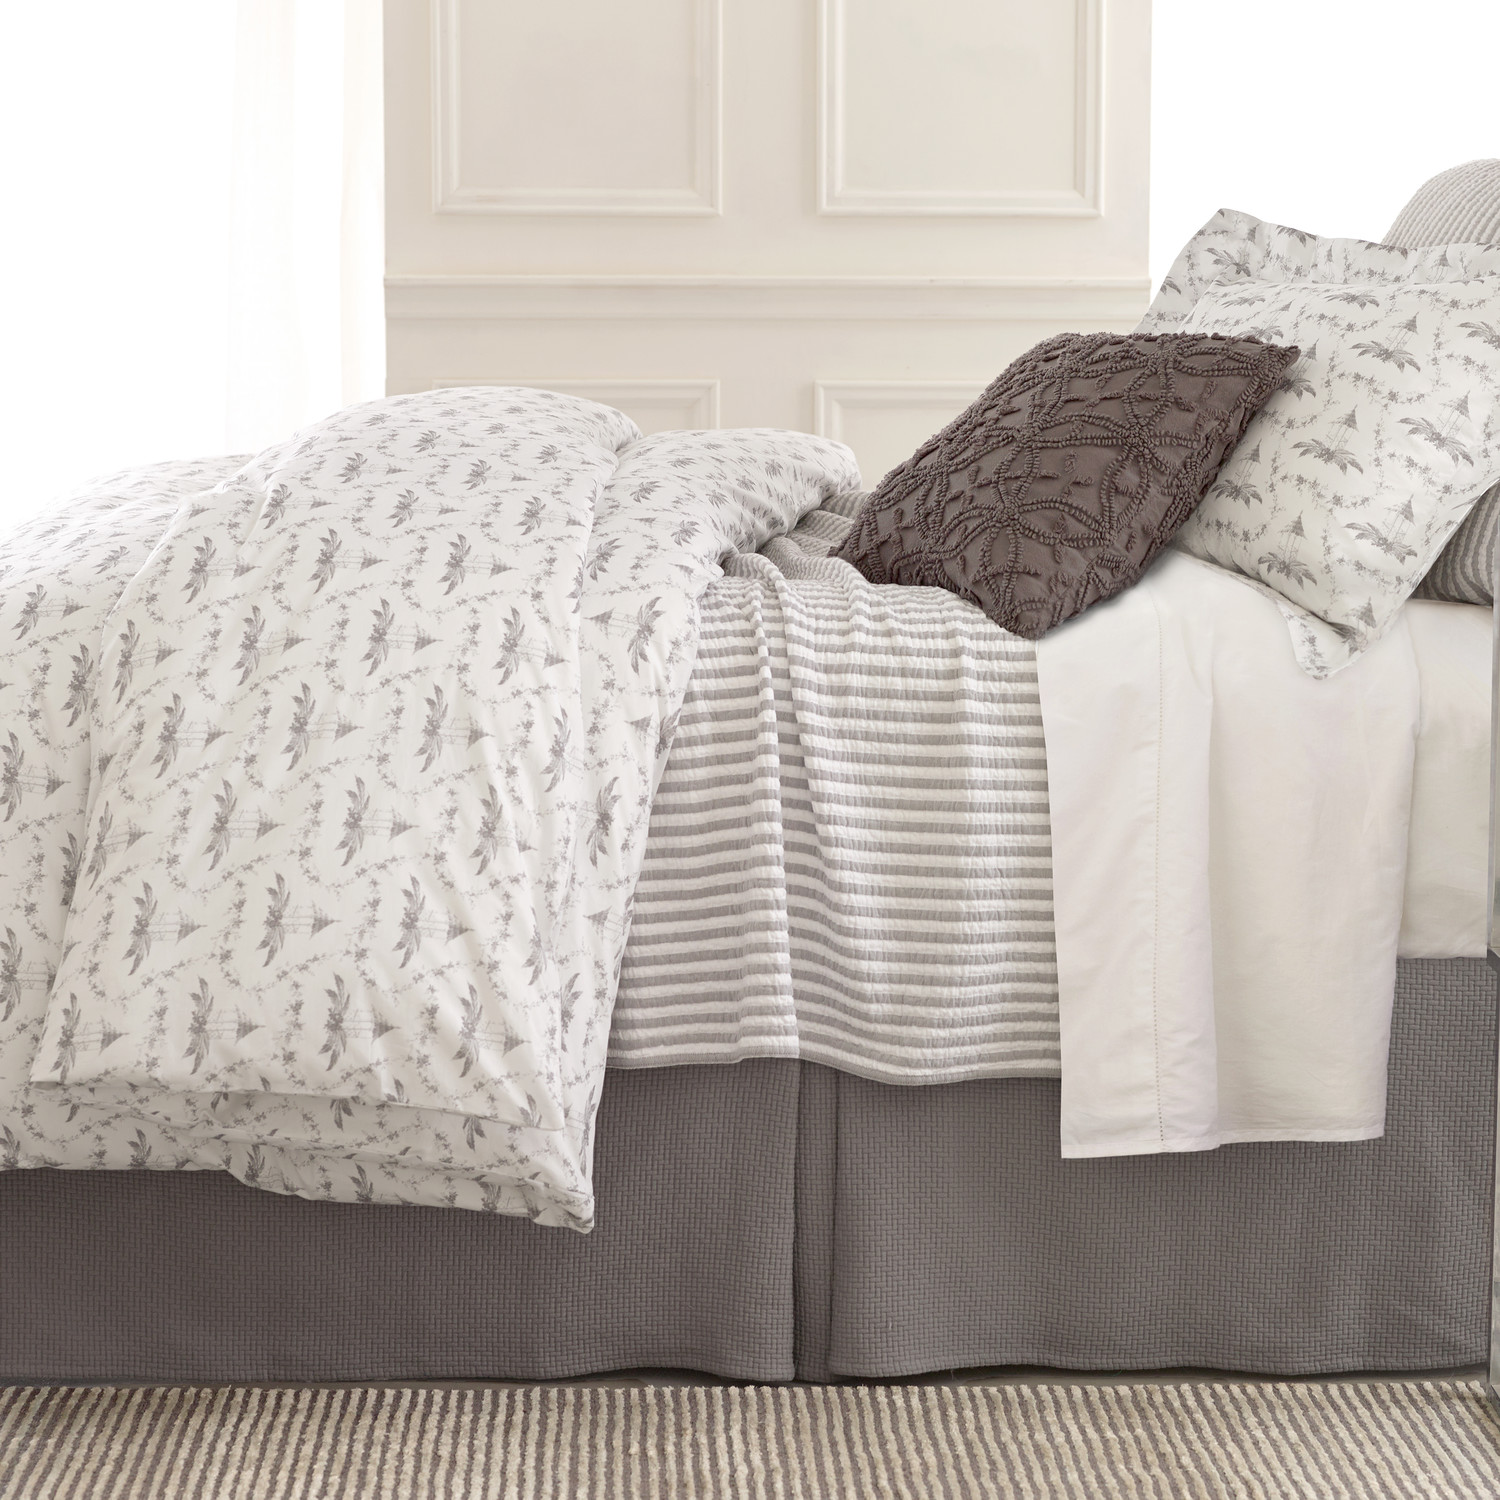 Lovely Pine Cone Hill Bedding For Interesting Bed Ideas: Charming Pine Cone Hill Tiki Toile Duvet Cover In White And Gray For Bed Ideas